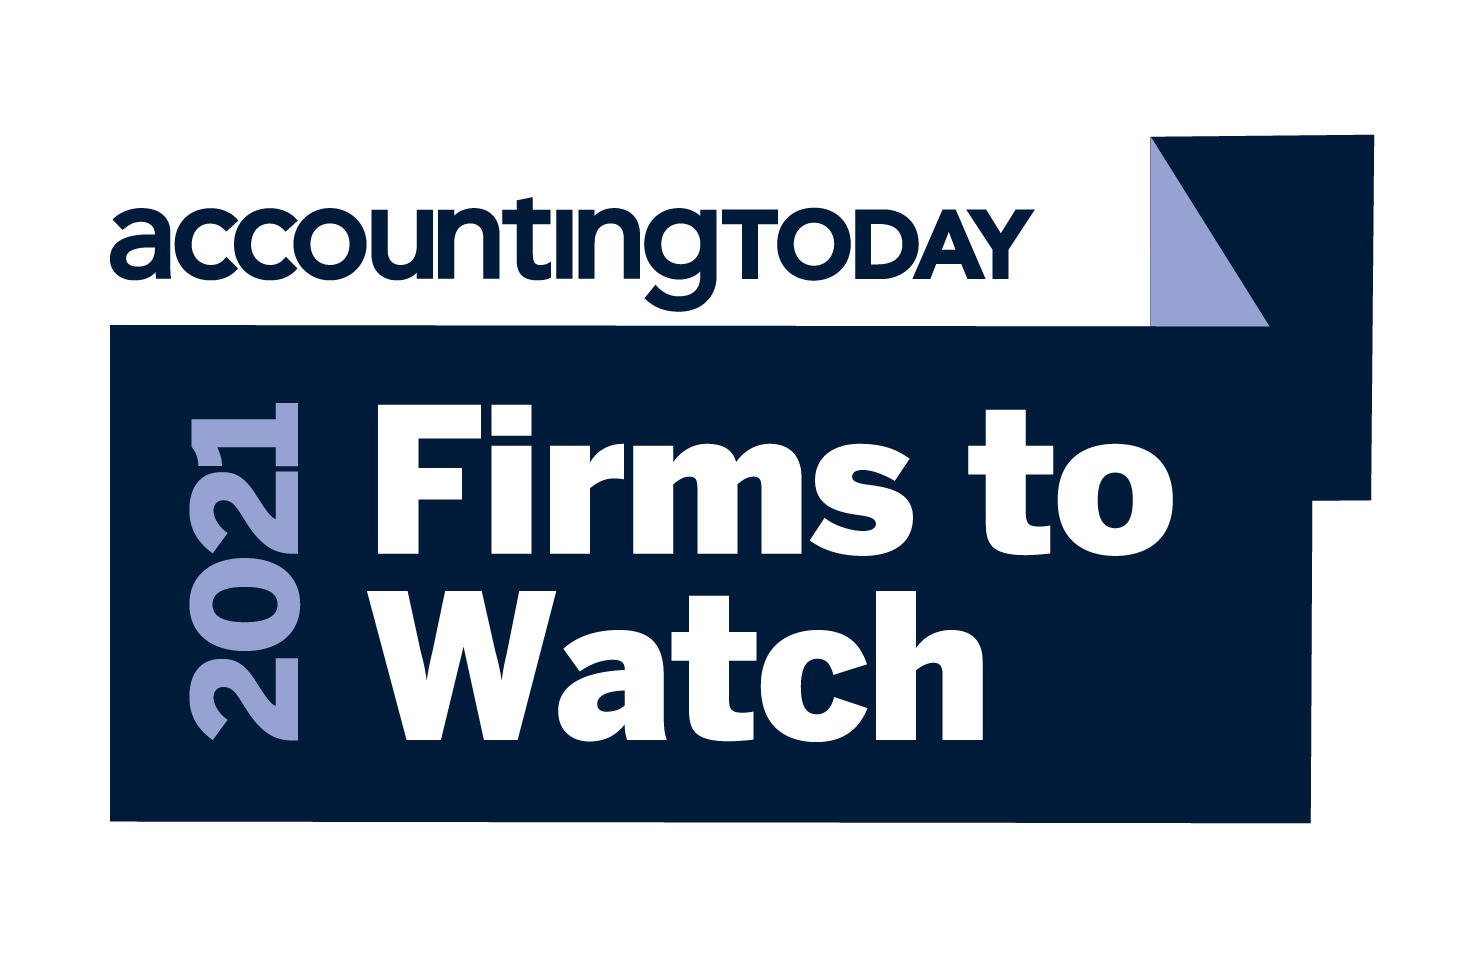 accounting today 2021 firms to watch title